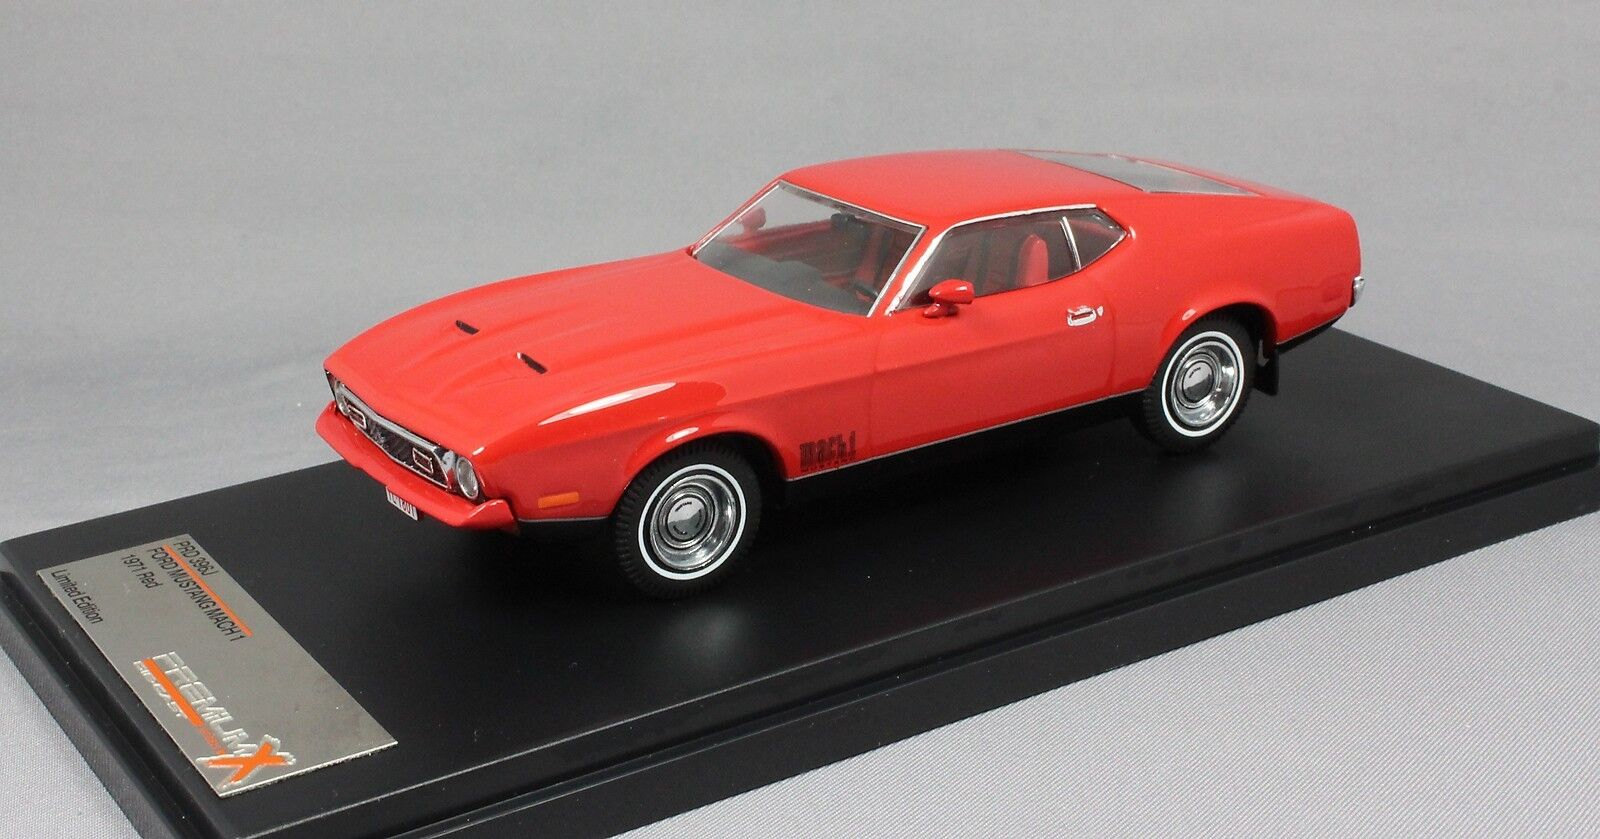 Premium X Ford Mustang Mach 1 in Red 1971 PRD396J 1 43 NEW Limited Edition